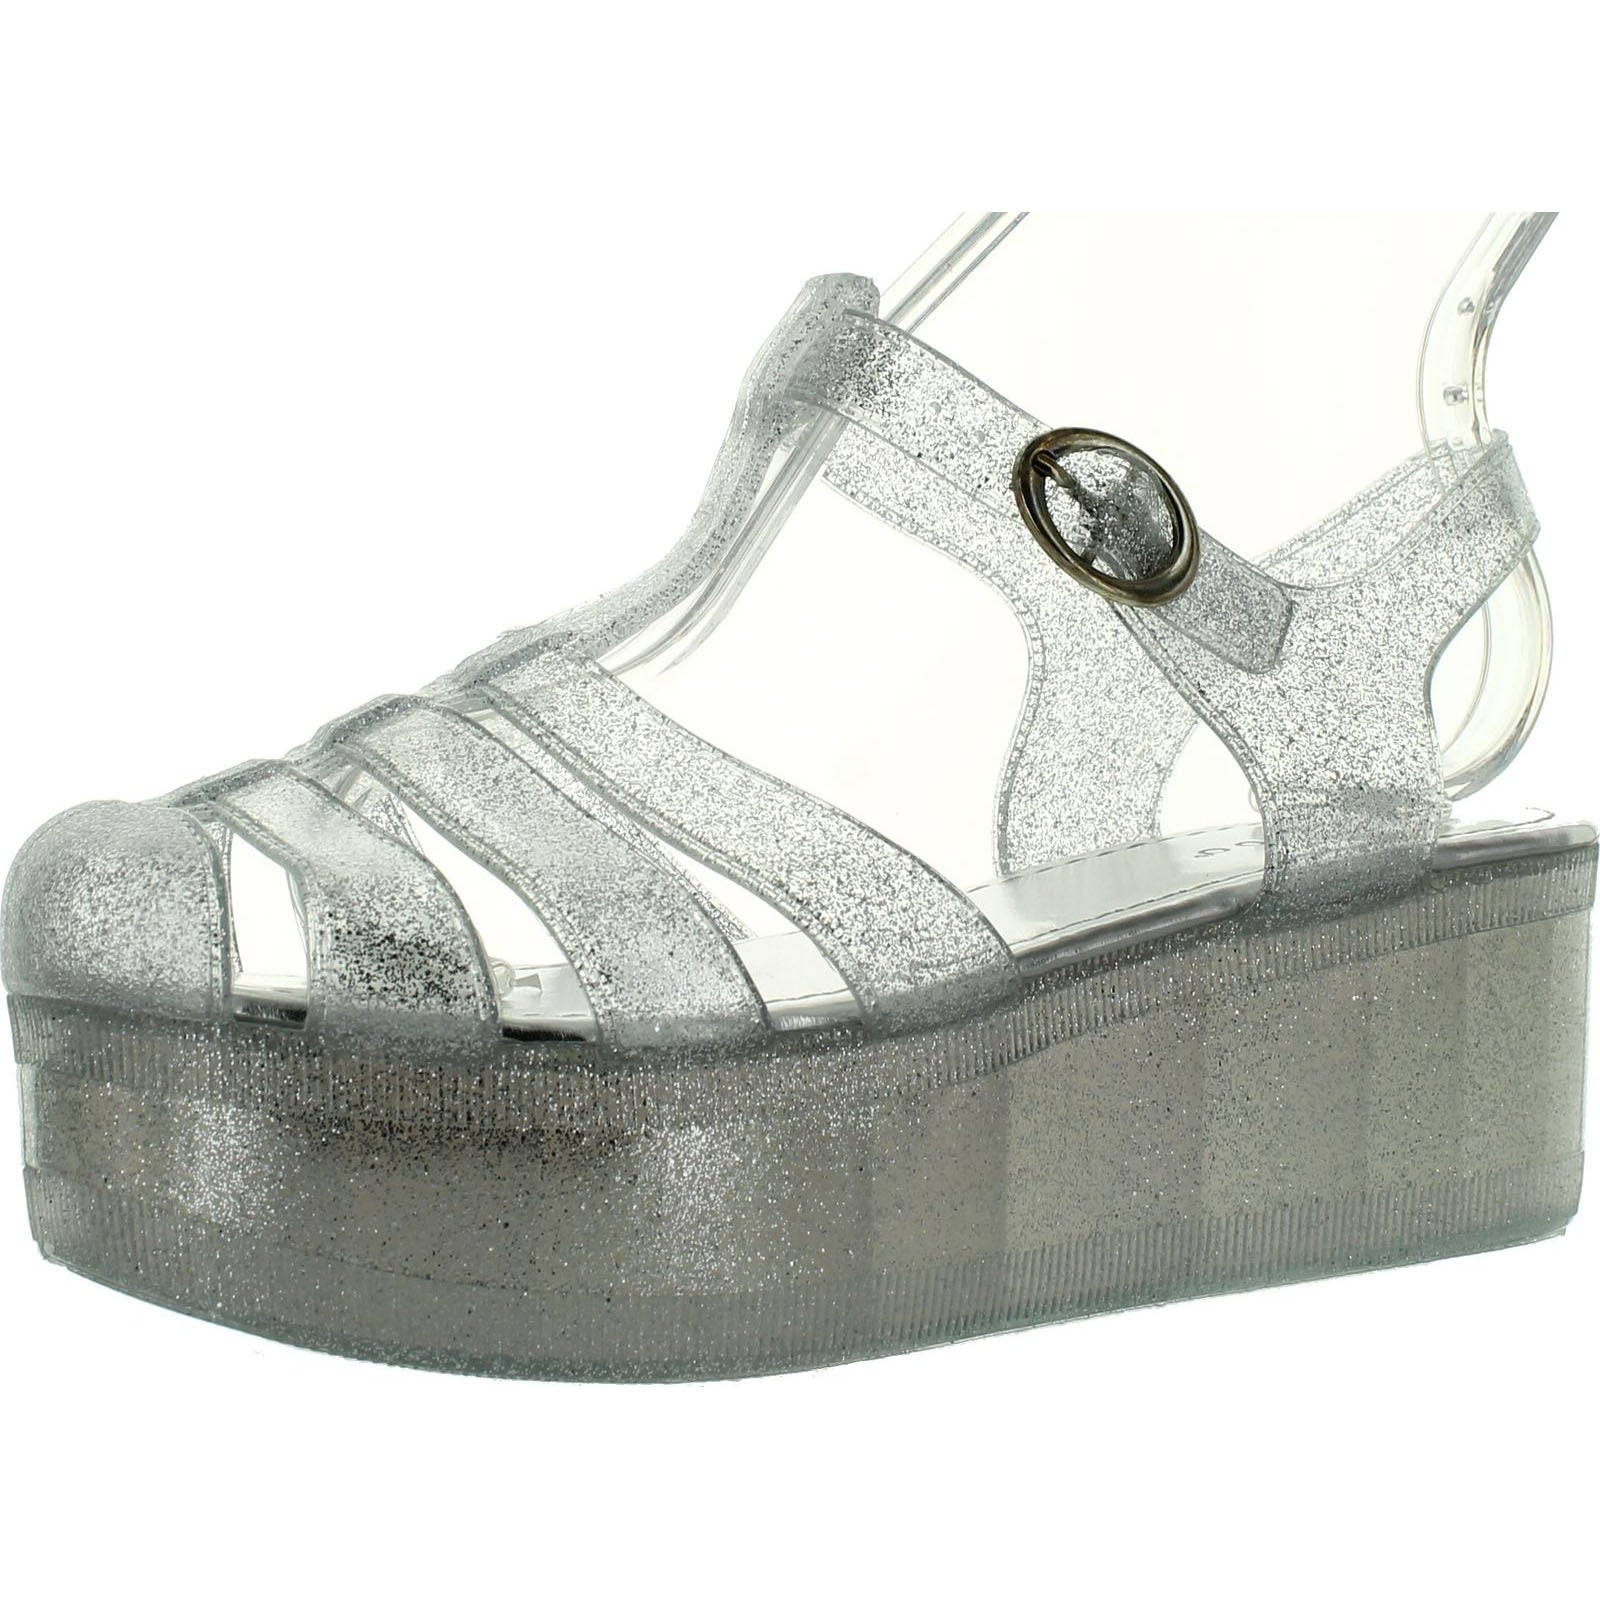 35f3f68c0b60 Shop Bamboo Womens Klarissa-01 Glitter Flatform Jelly Shoes - Free Shipping  On Orders Over  45 - Overstock - 14312456